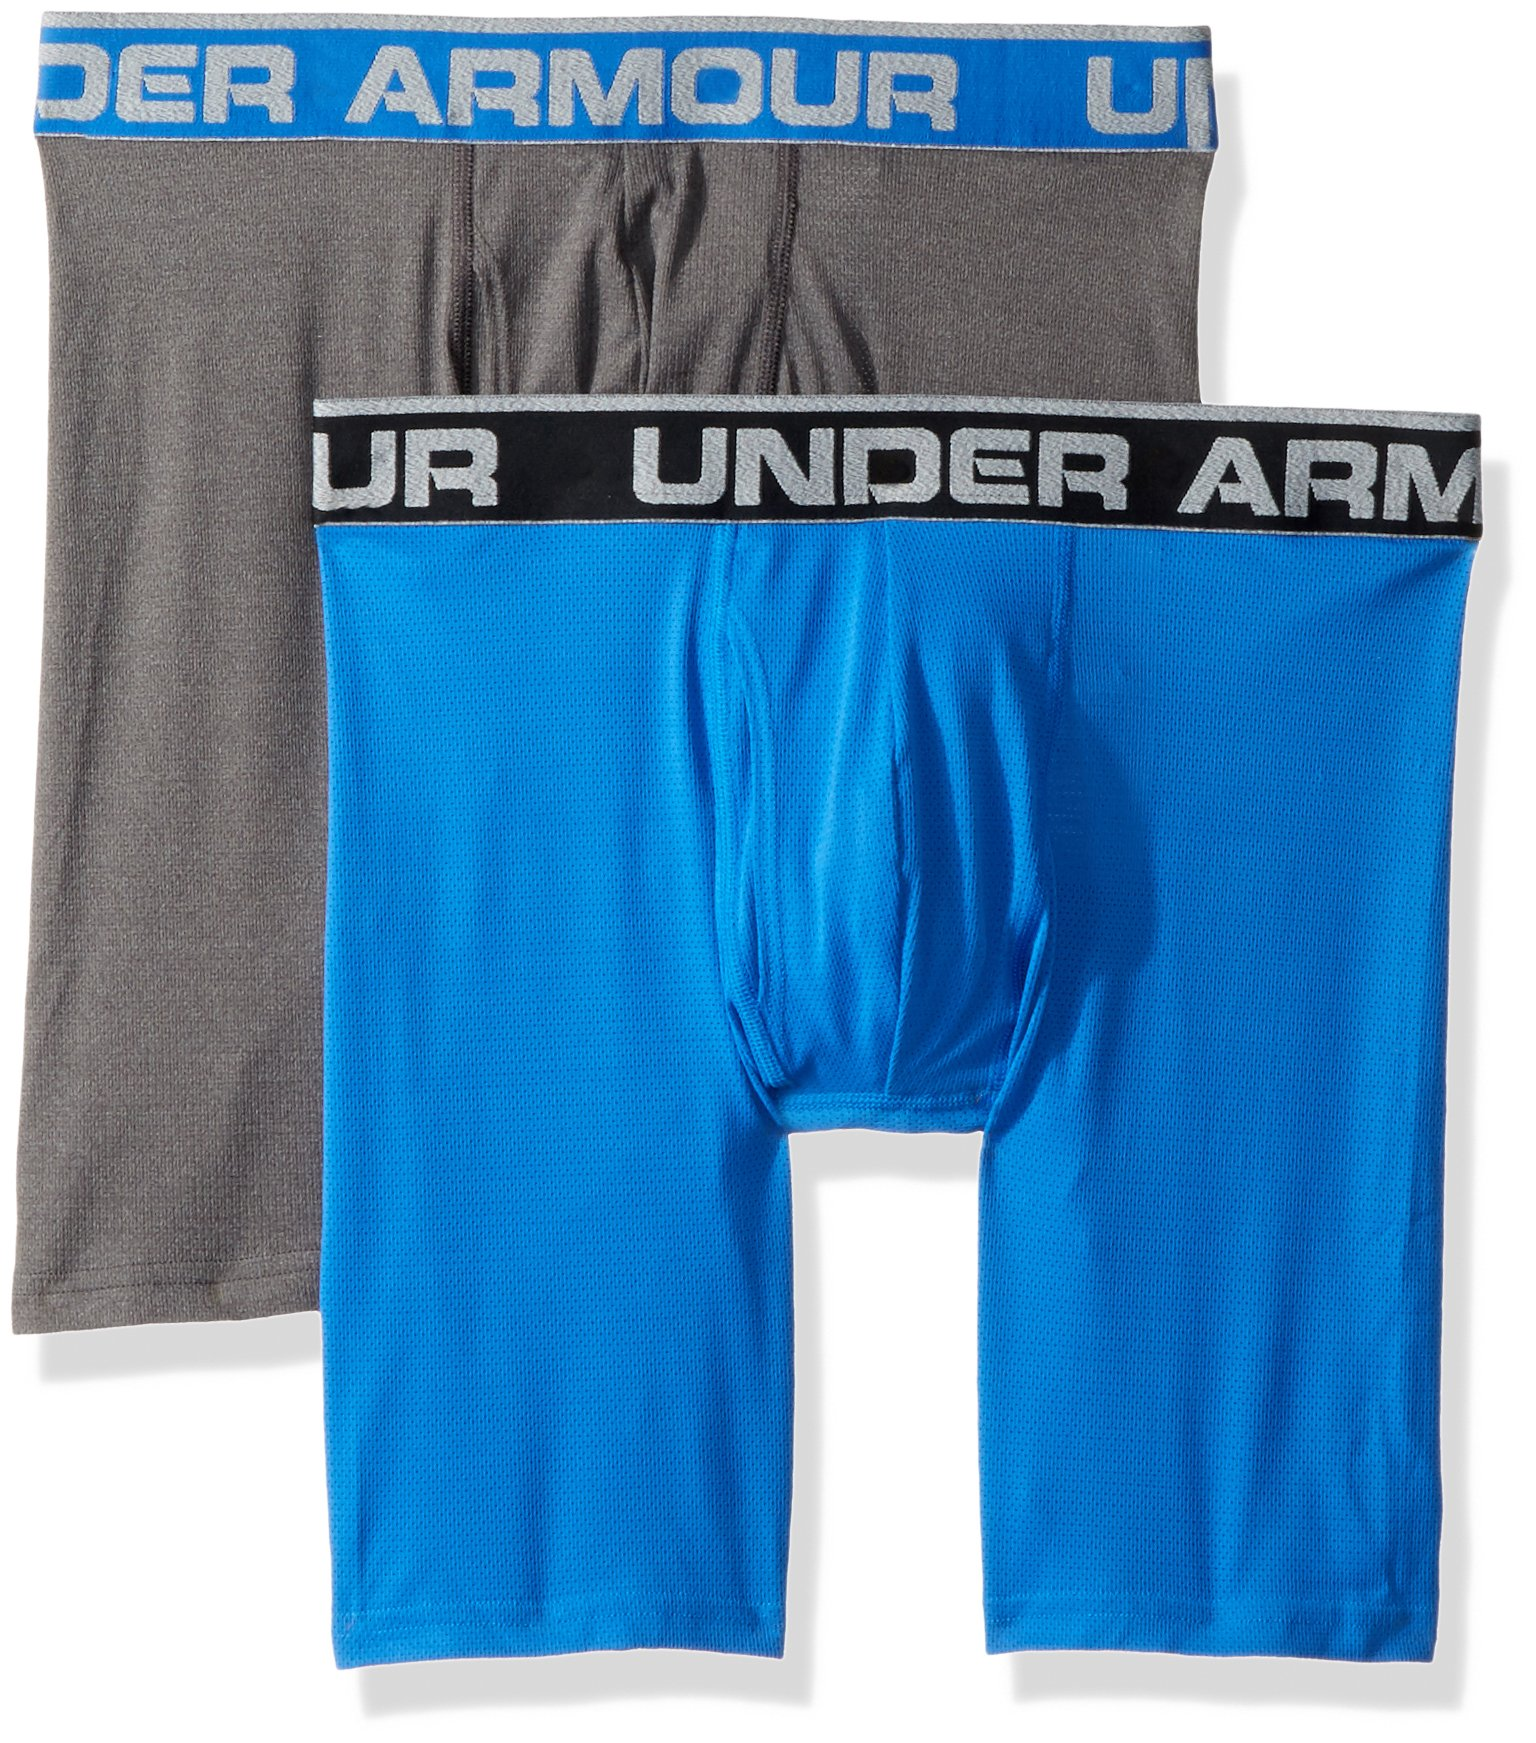 Under Armour Men's Tech Mesh 9'' Boxerjock - 2-Pack, Mediterranean (437), Small by Under Armour